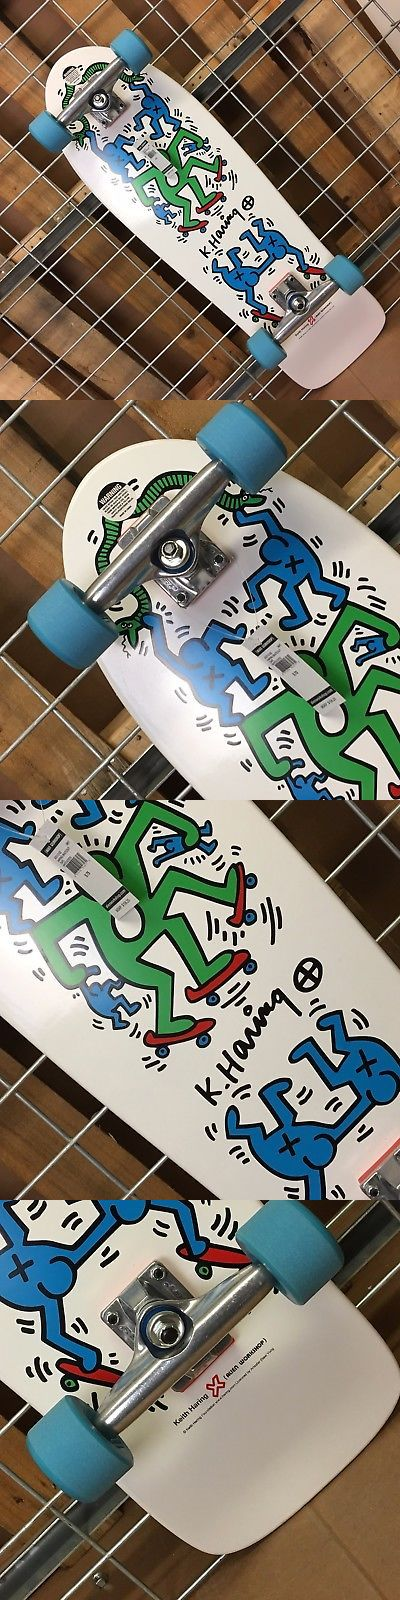 Longboards-Complete 165942: New Alien Workshop Haring Skateout White Complete Skateboard - 9.75In X 30In -> BUY IT NOW ONLY: $114.95 on eBay!